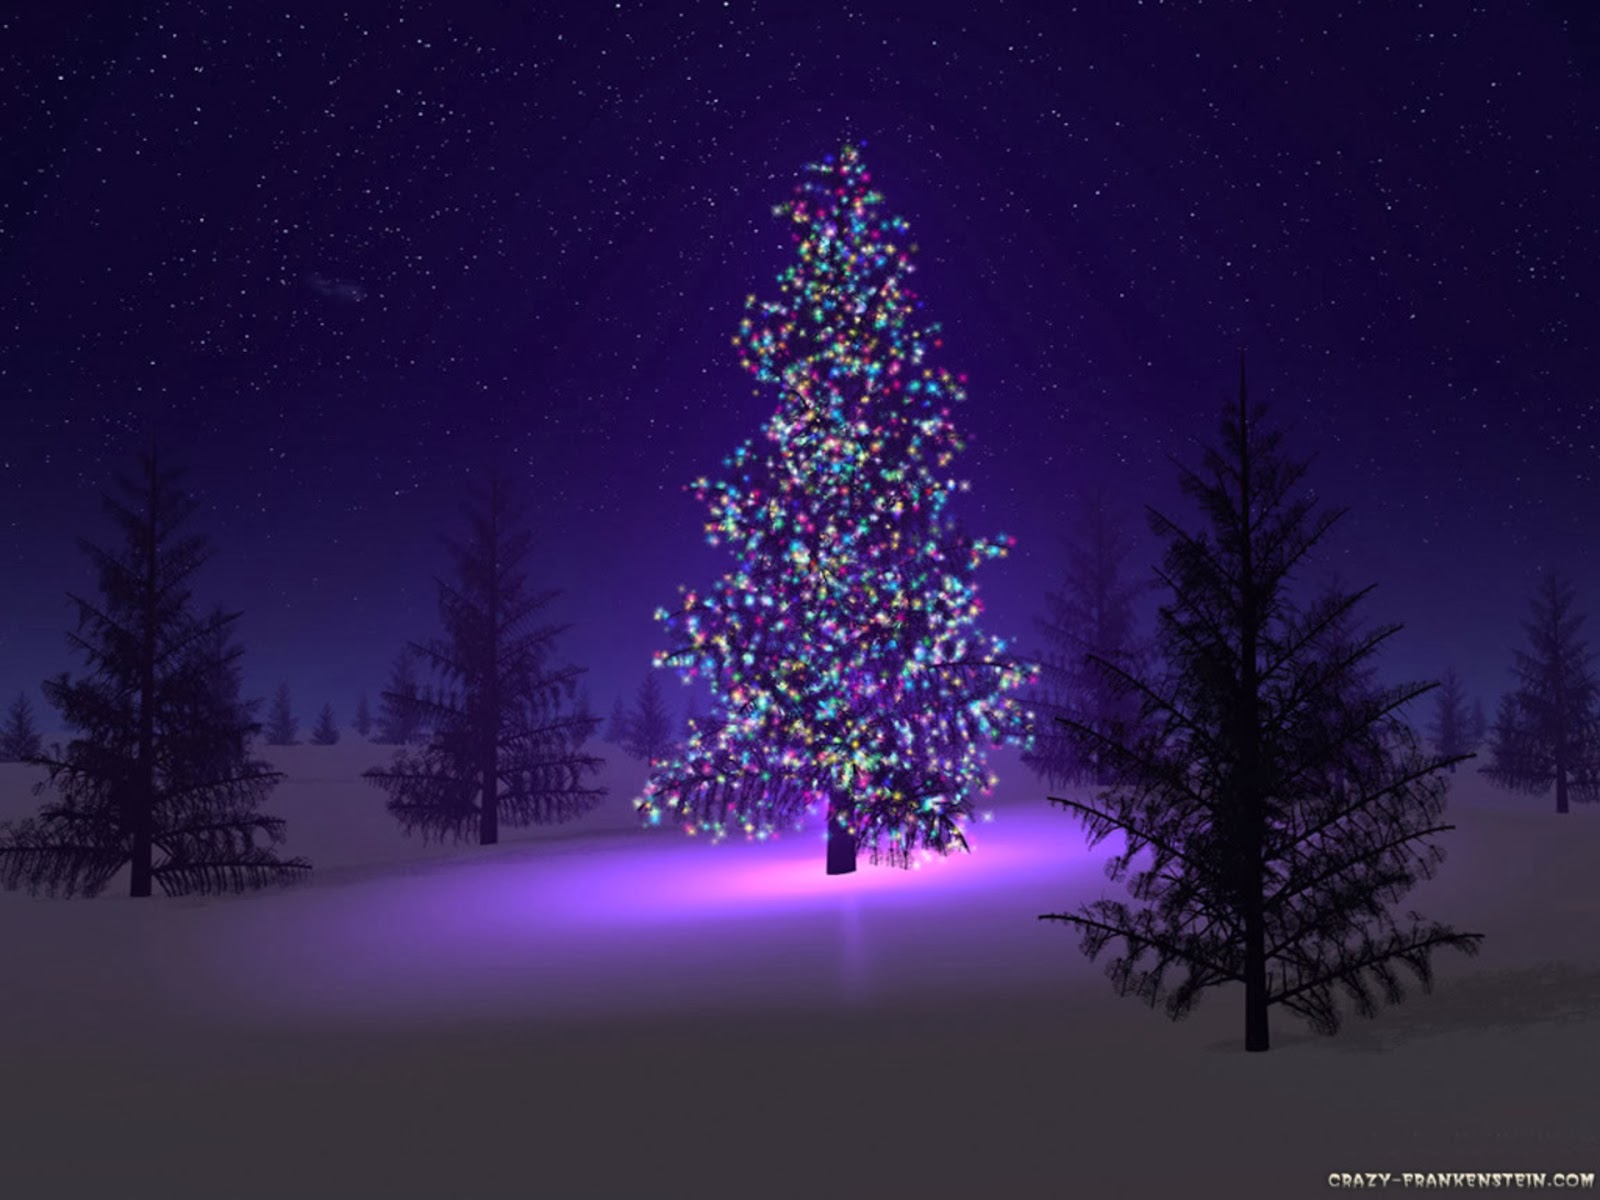 christmastreewallpaperhd christmastreewallpaperbackgrounds 1600x1200